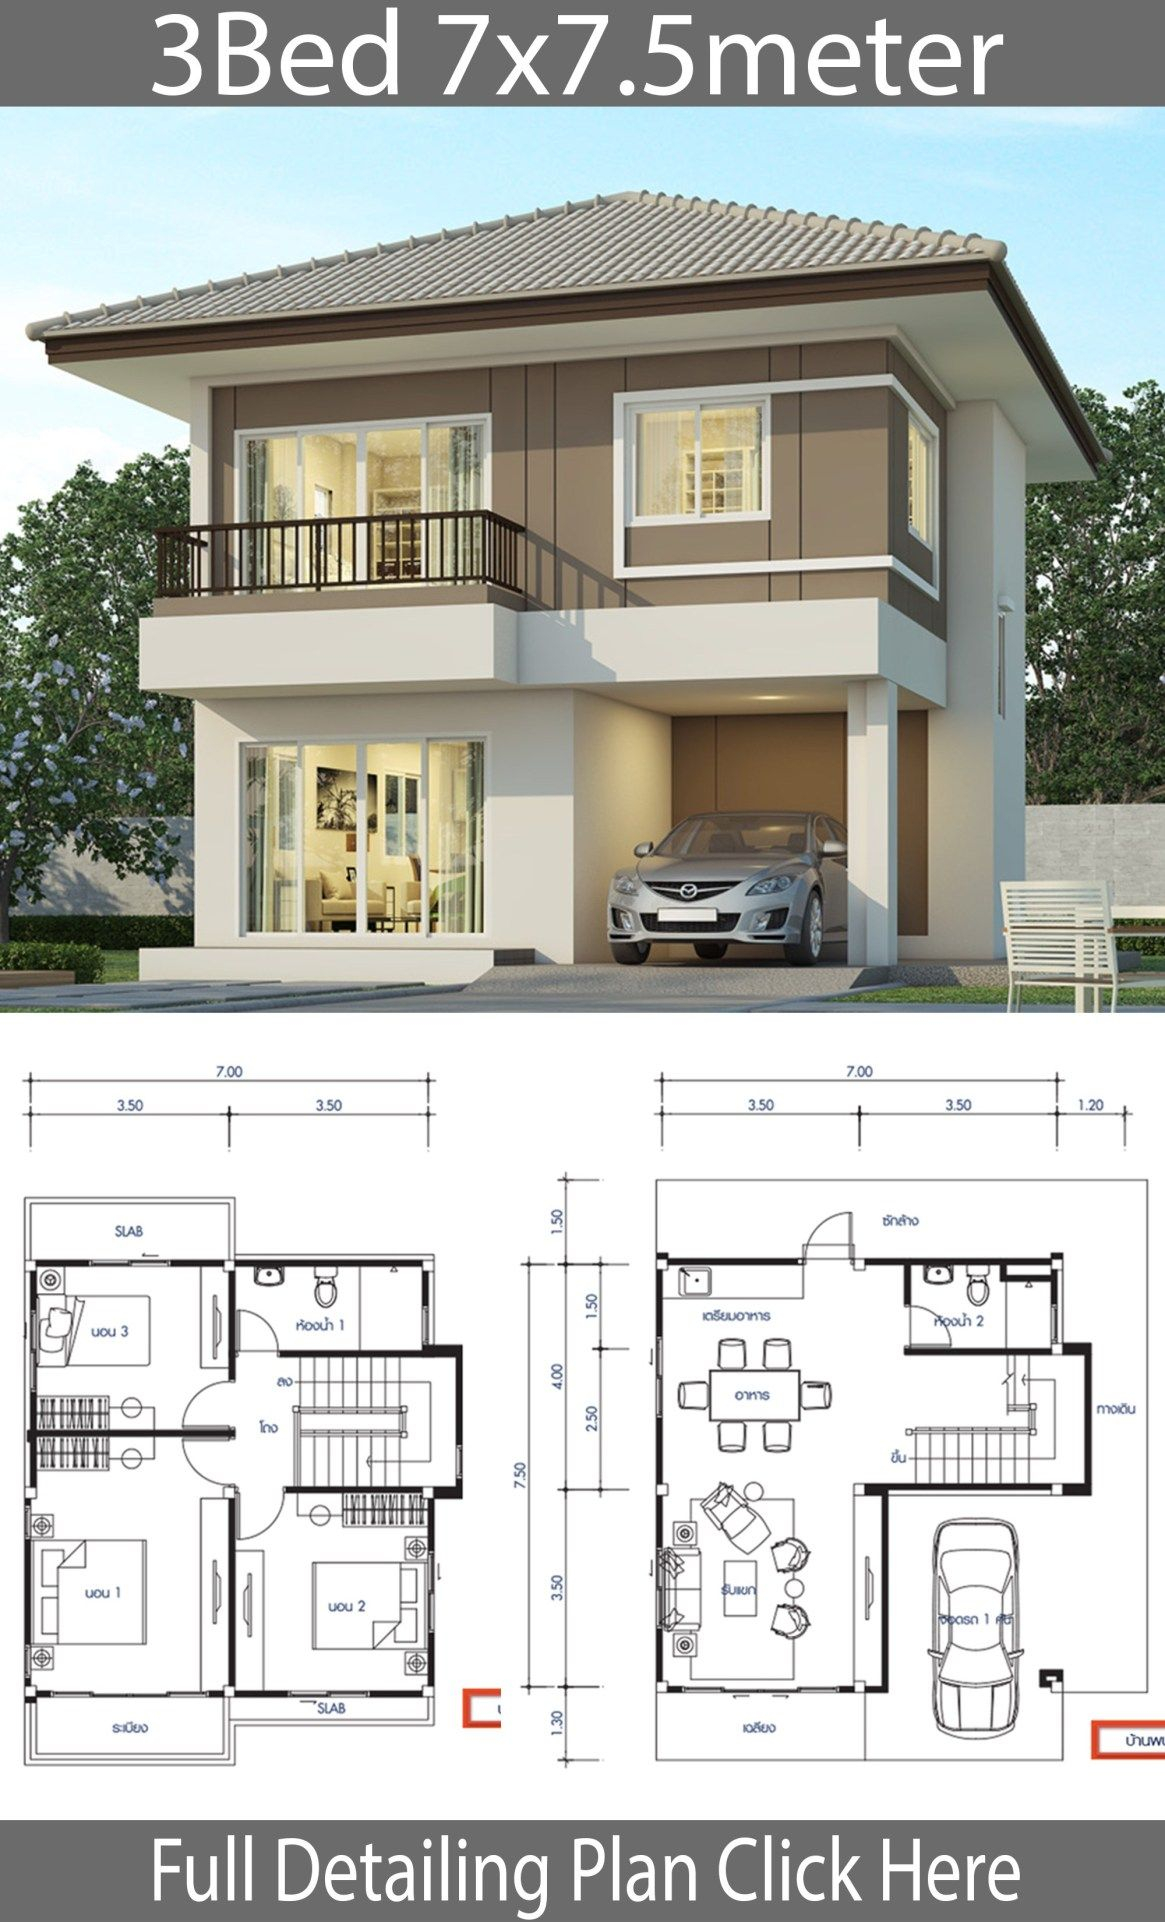 House Design Plan 7x75m With 3 Bedrooms Modern Houses 2 throughout 3 Bedroom Modern House Design